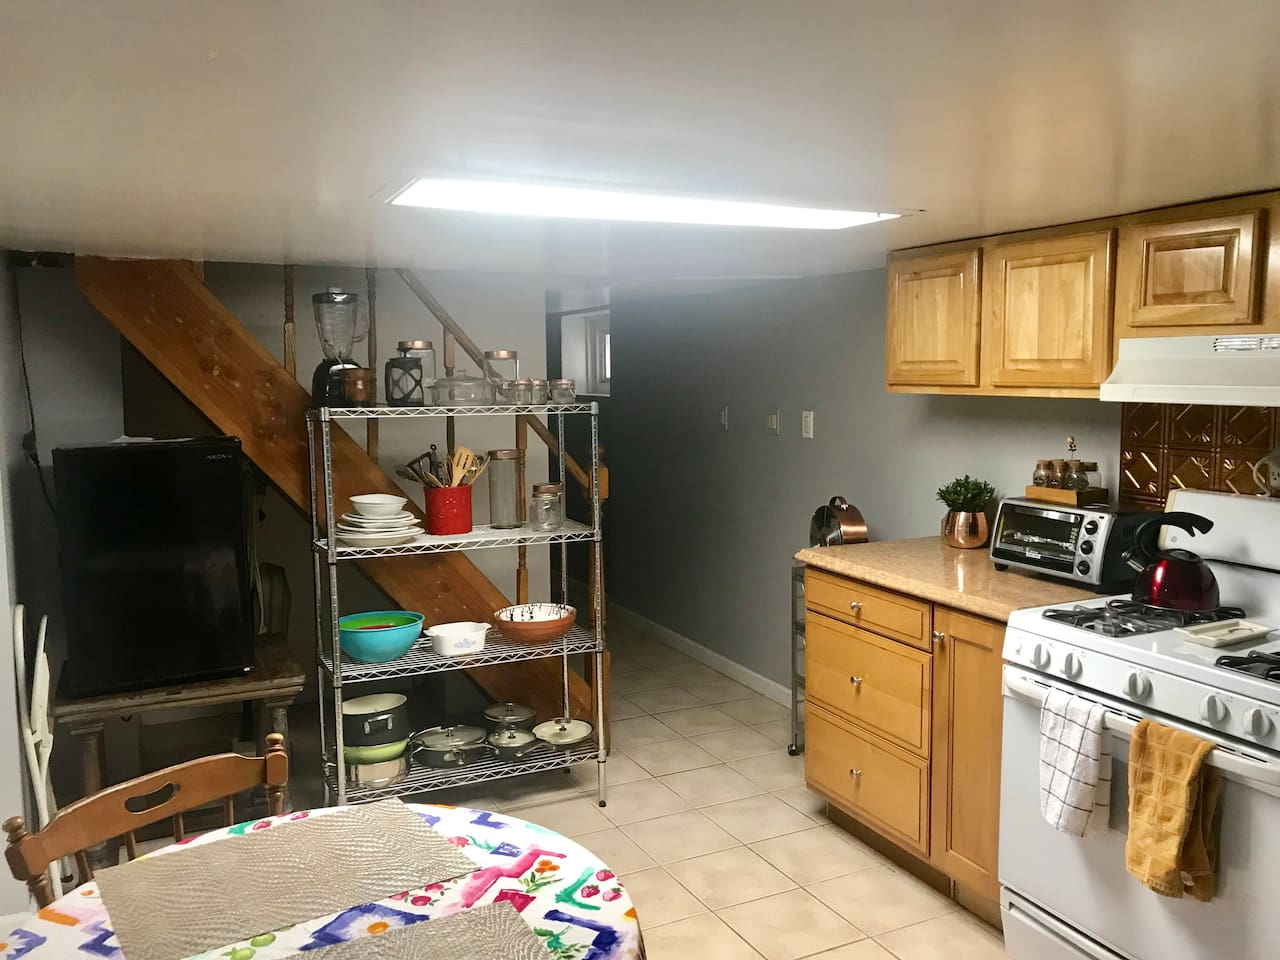 Full kitchen, working oven, stove top for cooking, coffee pot, toaster and microwave- to help create a great experience.